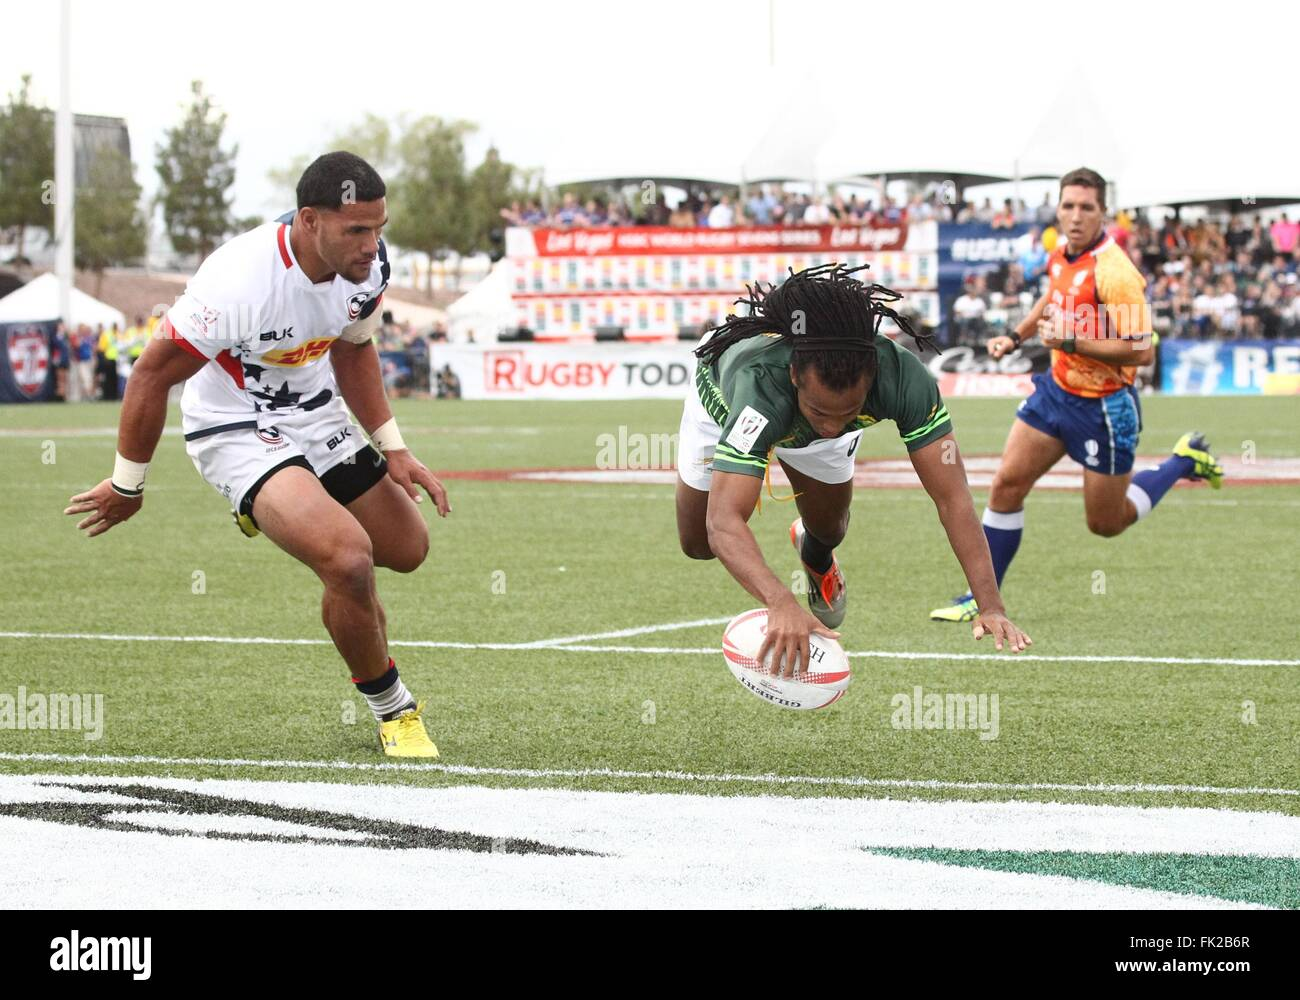 Las Vegas, NV, USA. 5th Mar, 2016. Cecil Afrika of South Africa in attendance for USA Sevens International Rugby - Stock Image